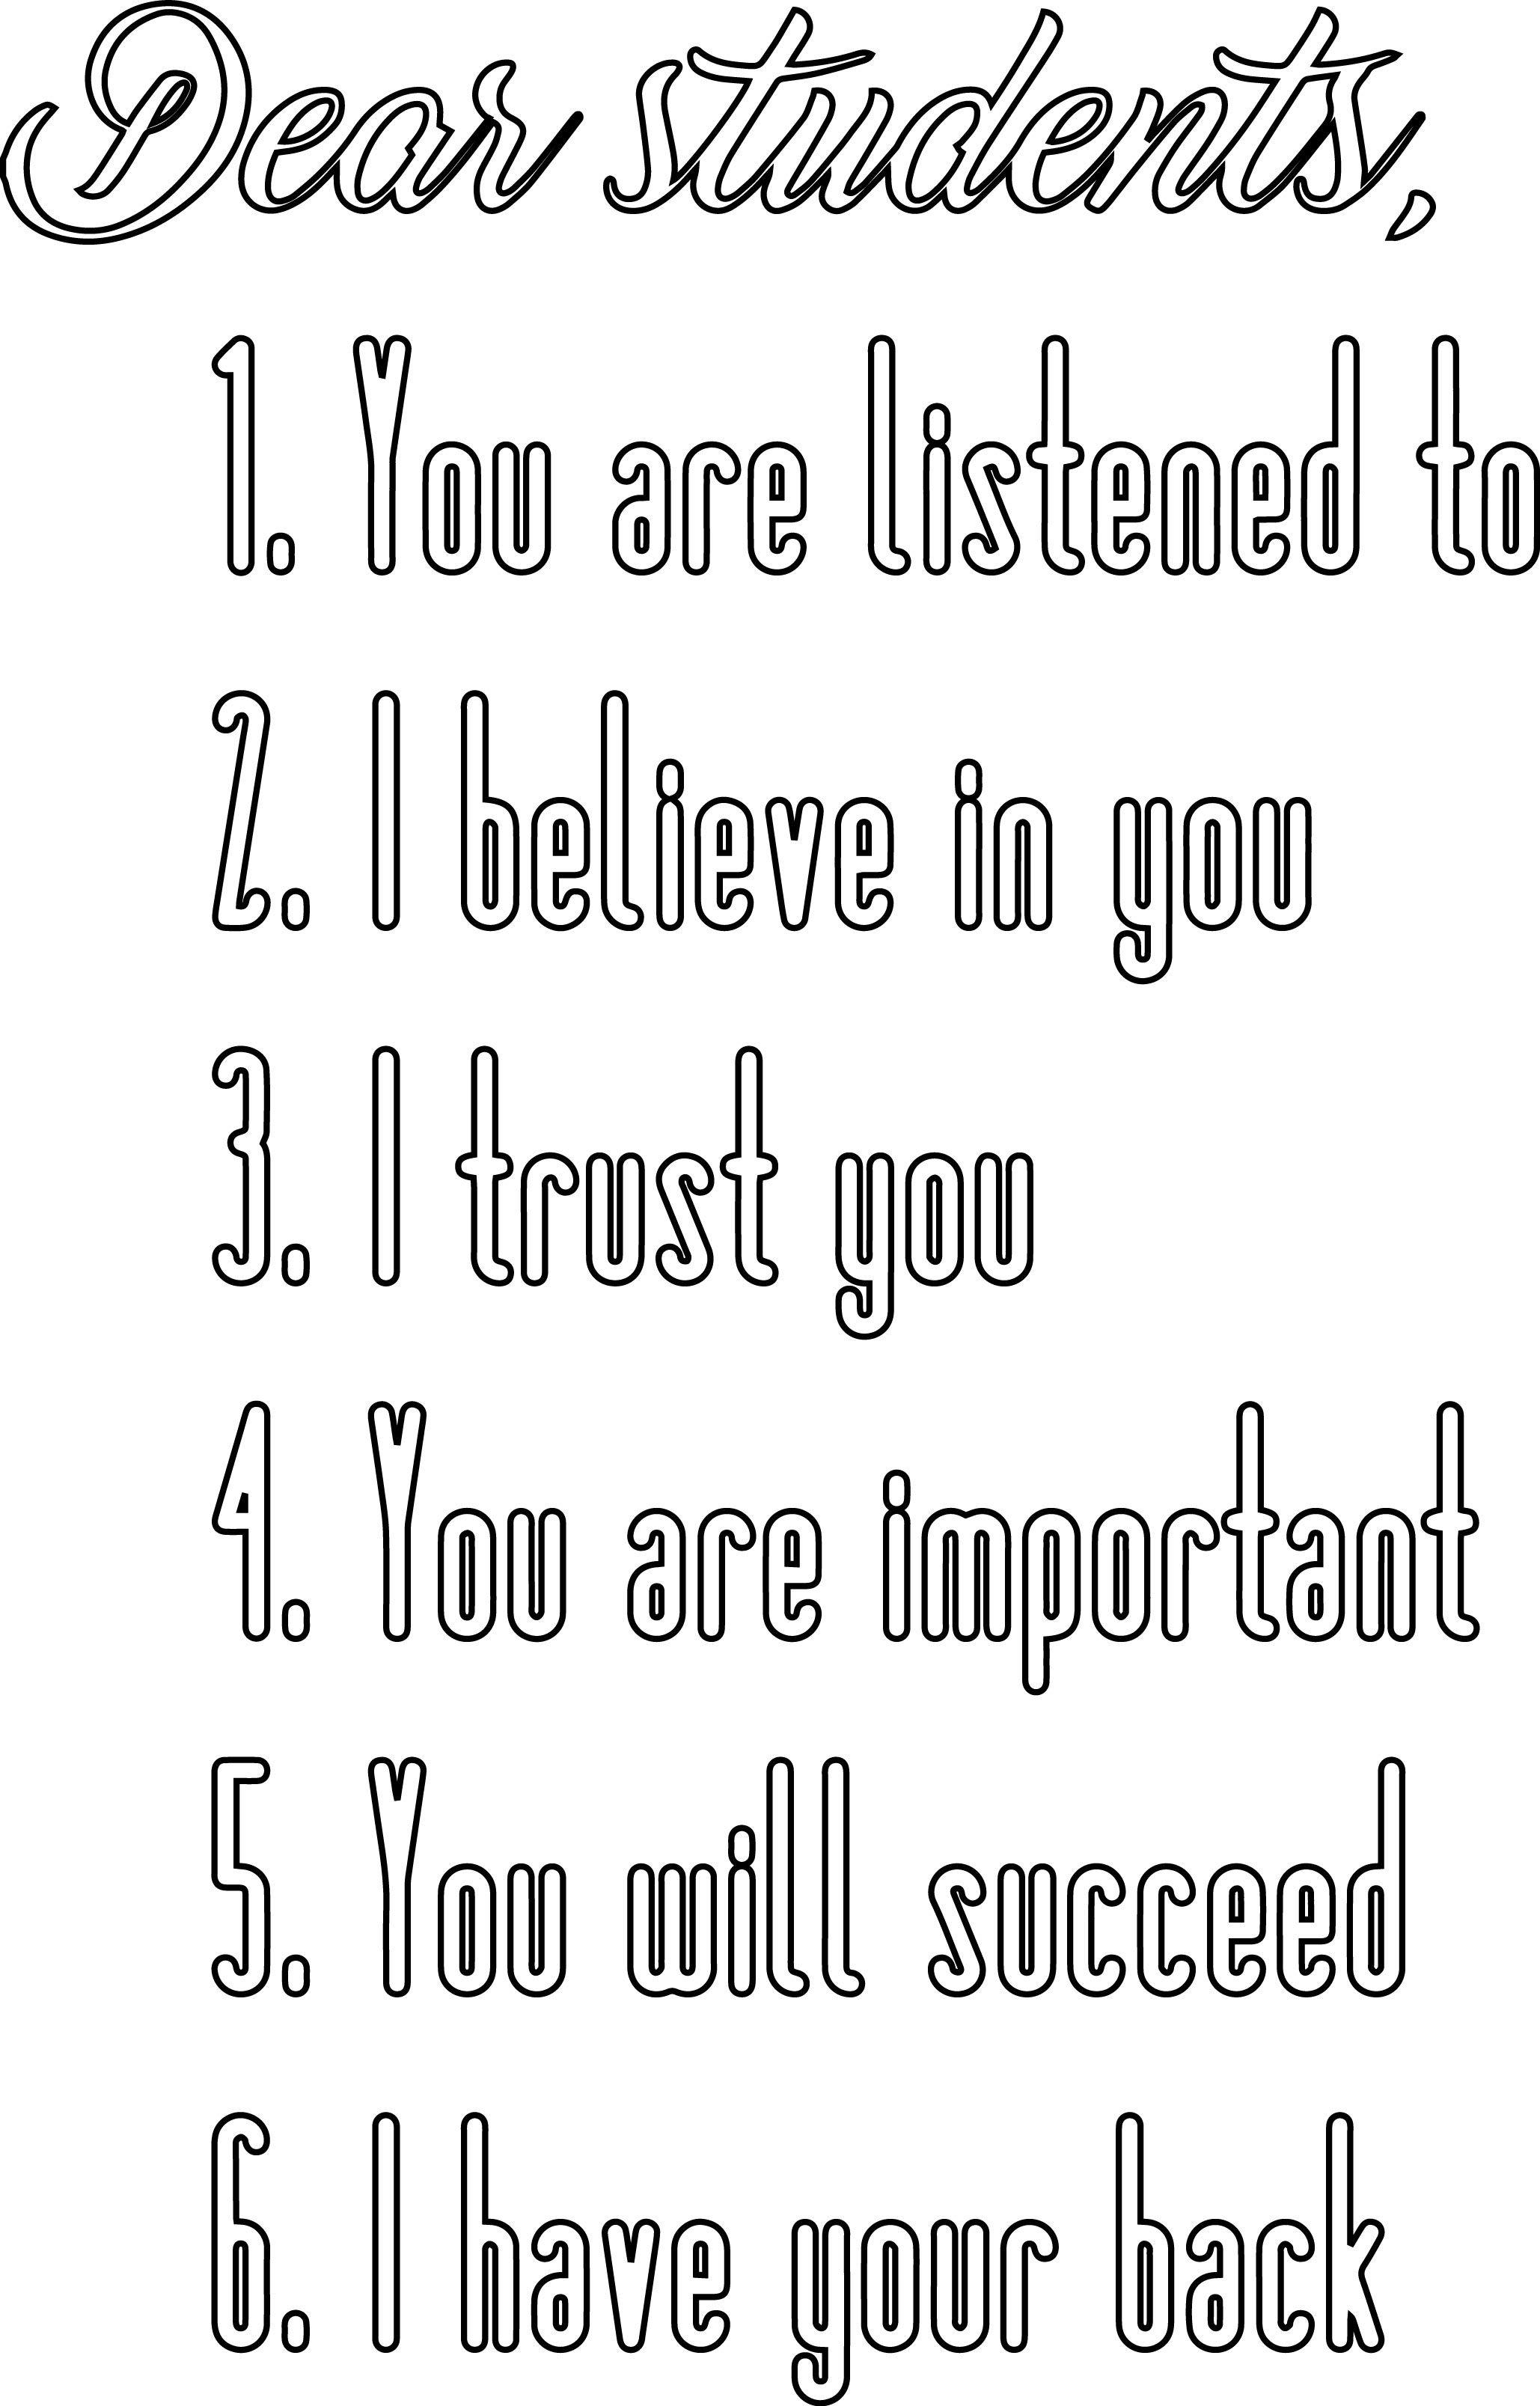 Positive Affirmations Are So Important For Building Self Esteem Resilience And A Growth